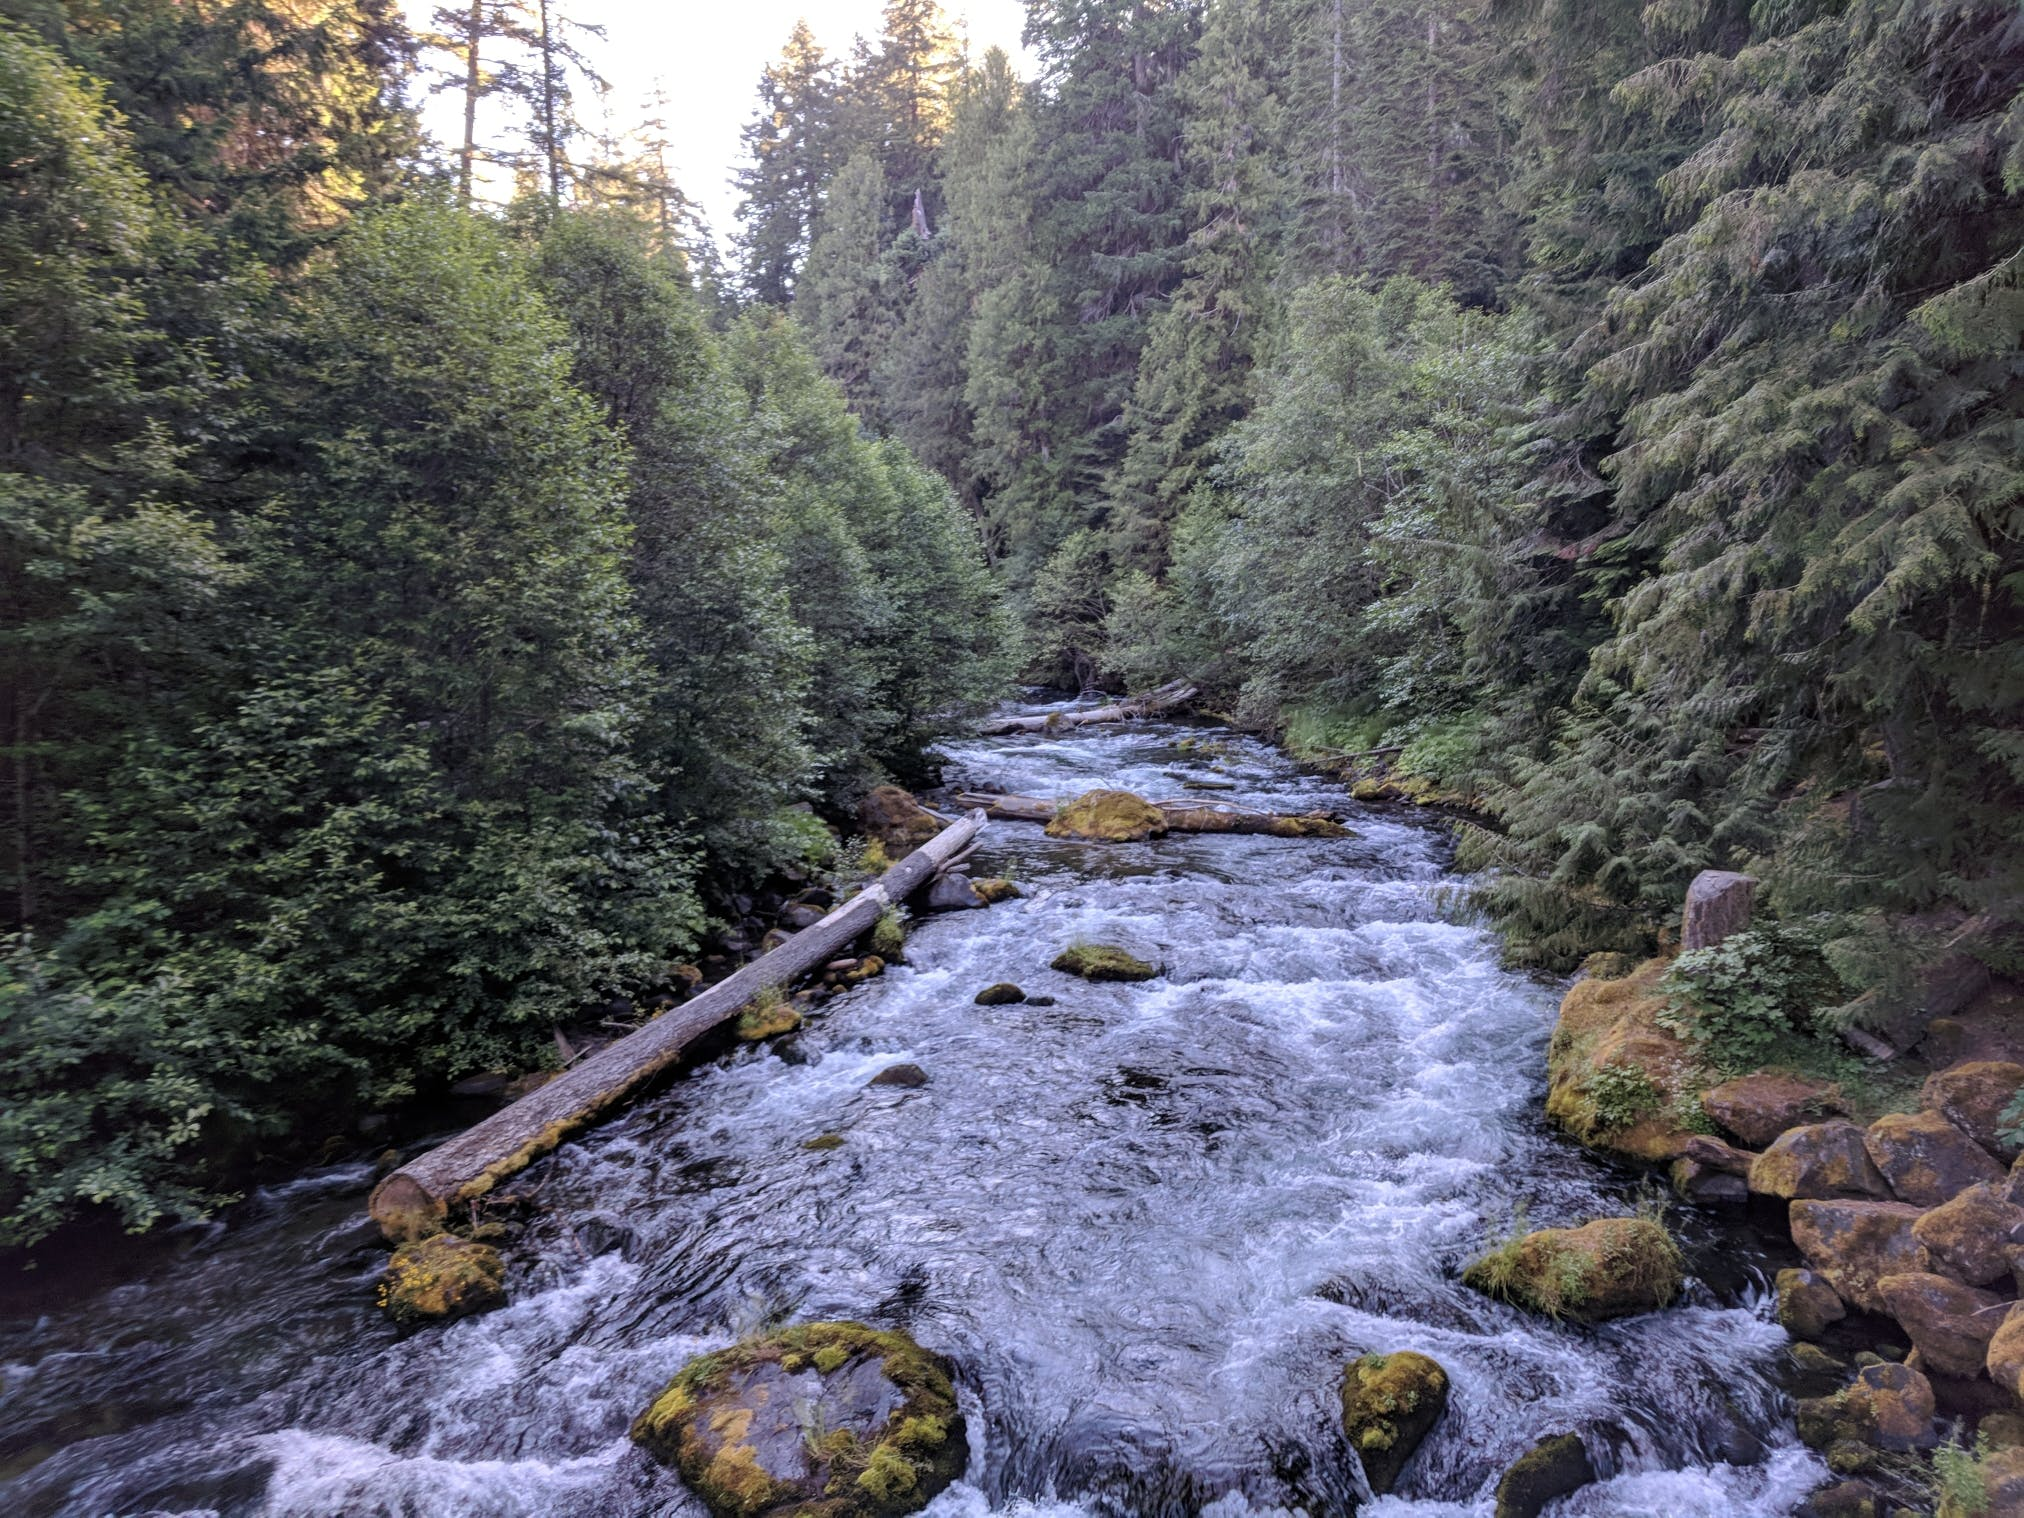 River near Umpqua Hot Springs, Oregon